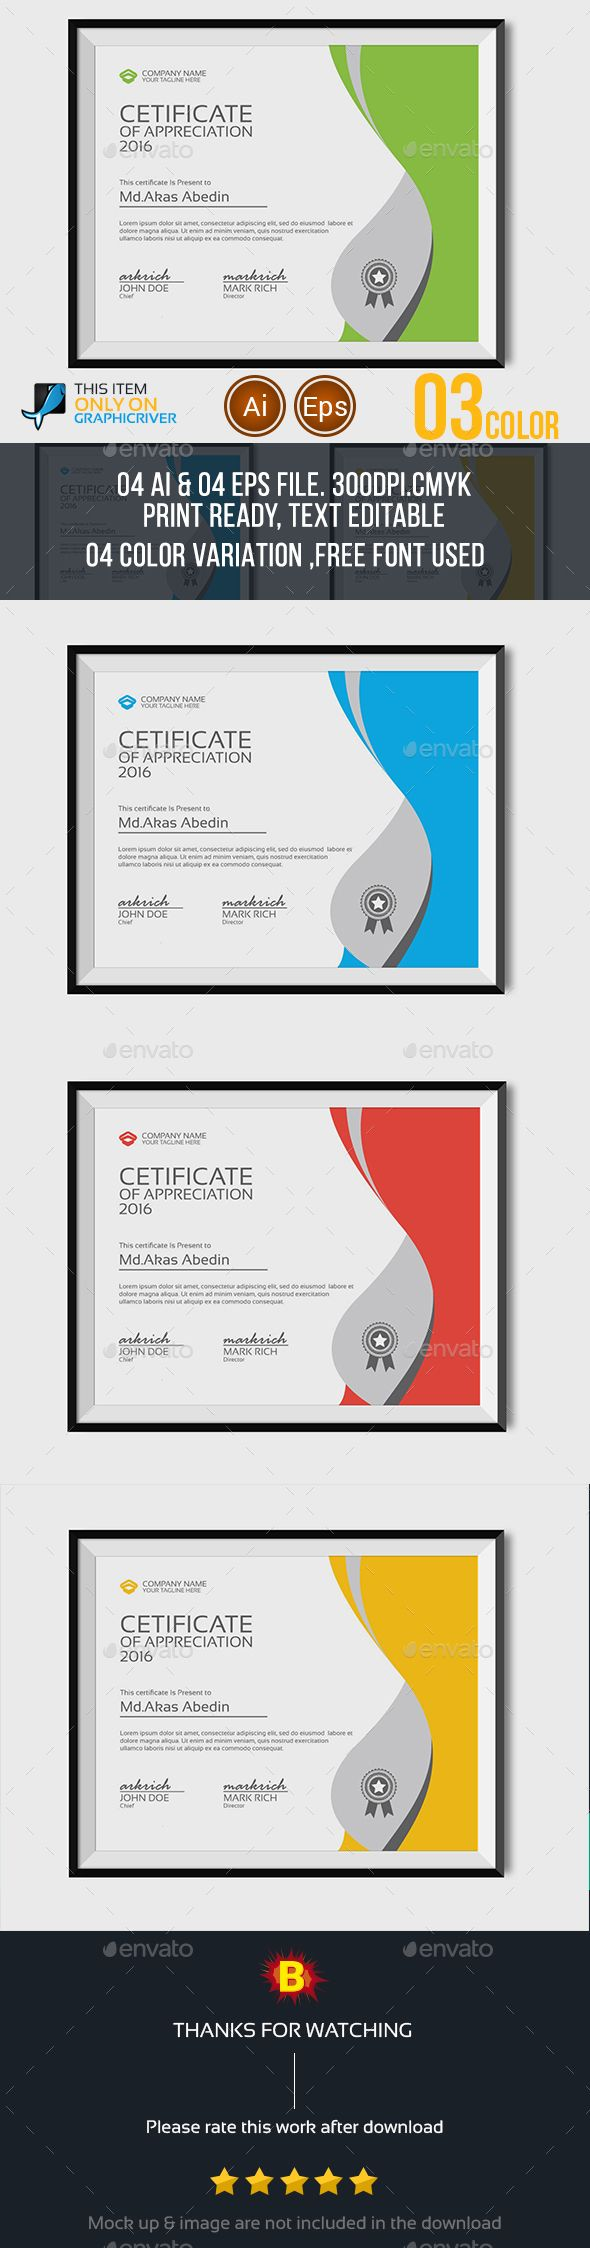 Certificate #Template - #Certificates #Stationery Download here:  https://graphicriver.net/item/certificate-template/13830747?ref=alena994